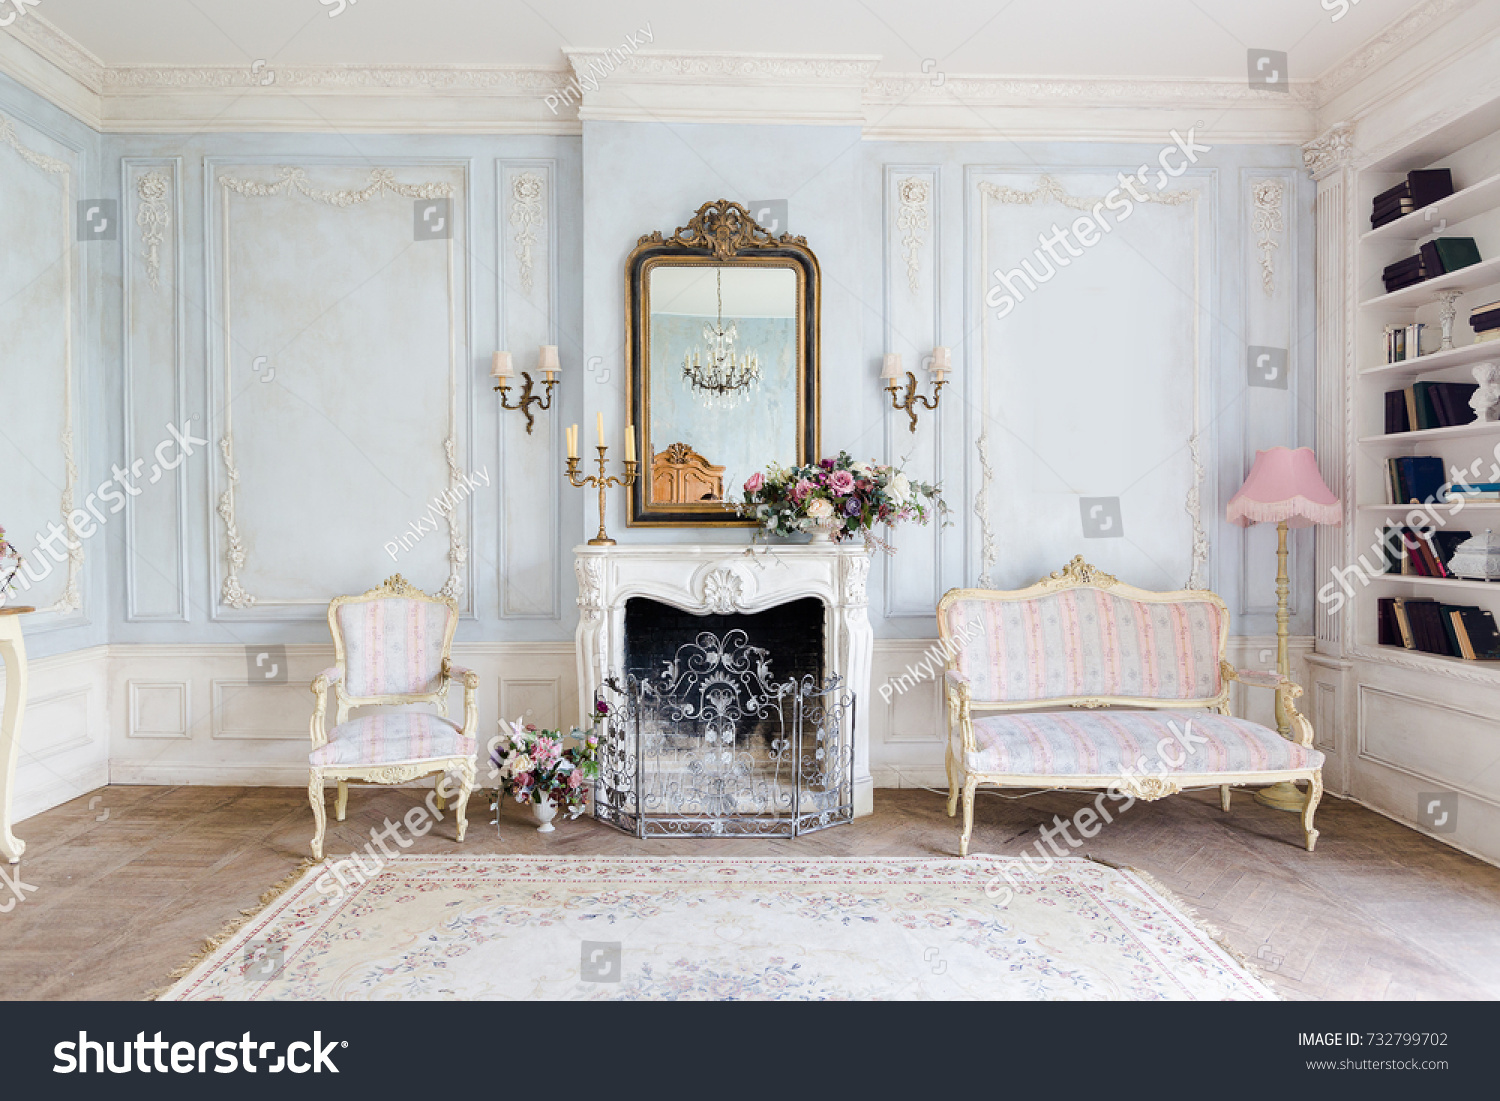 Cozy Interior Living Room Chic Beautiful Stock Photo & Image ...